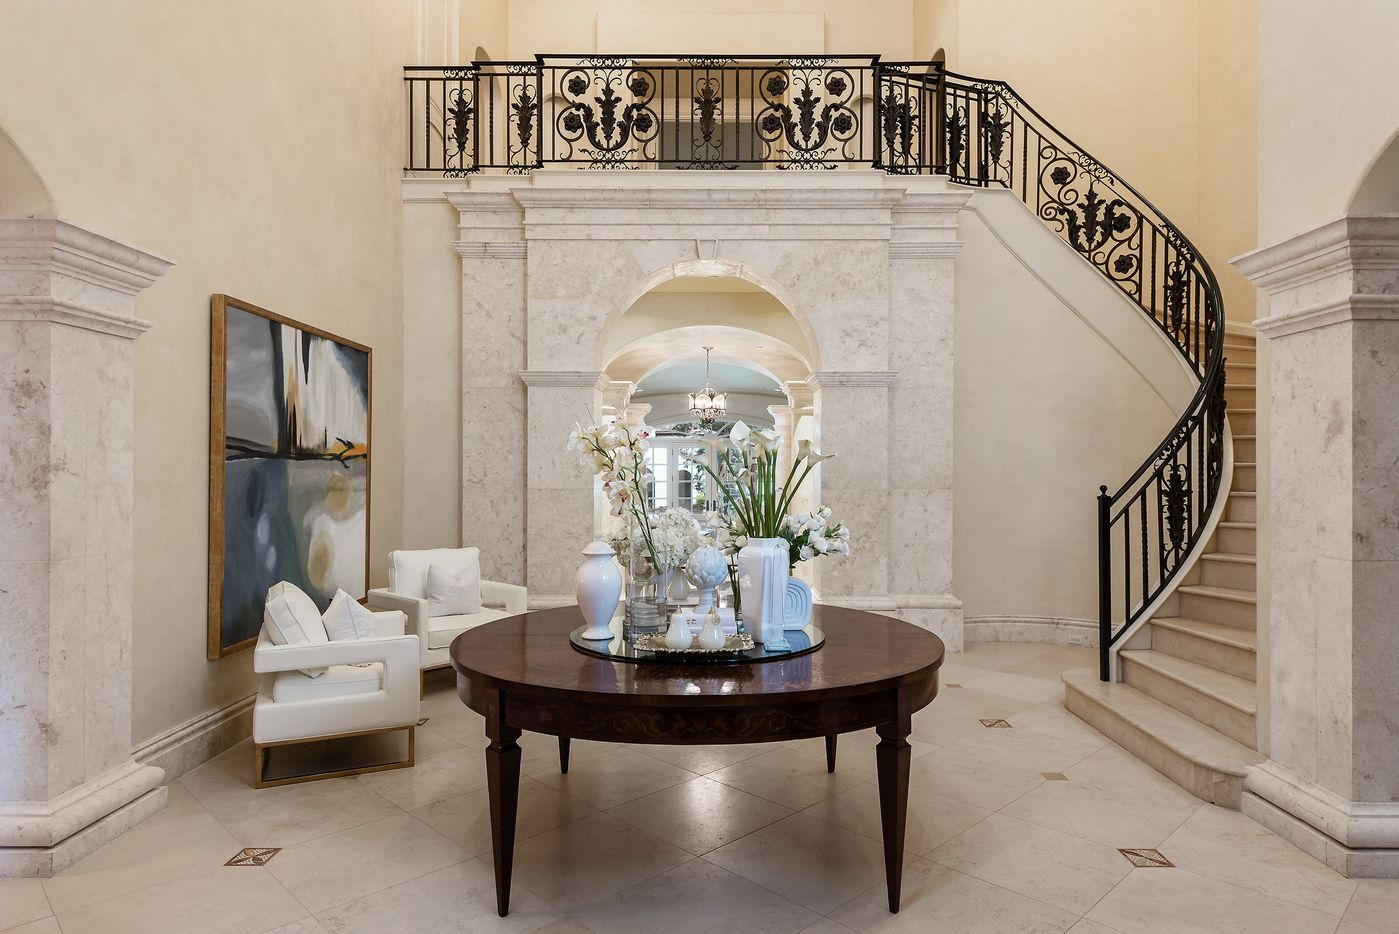 Take a look at the home at 5210 Deloache Ave. in Dallas. The home has seven bedrooms, eight bathrooms and two half-bathrooms.